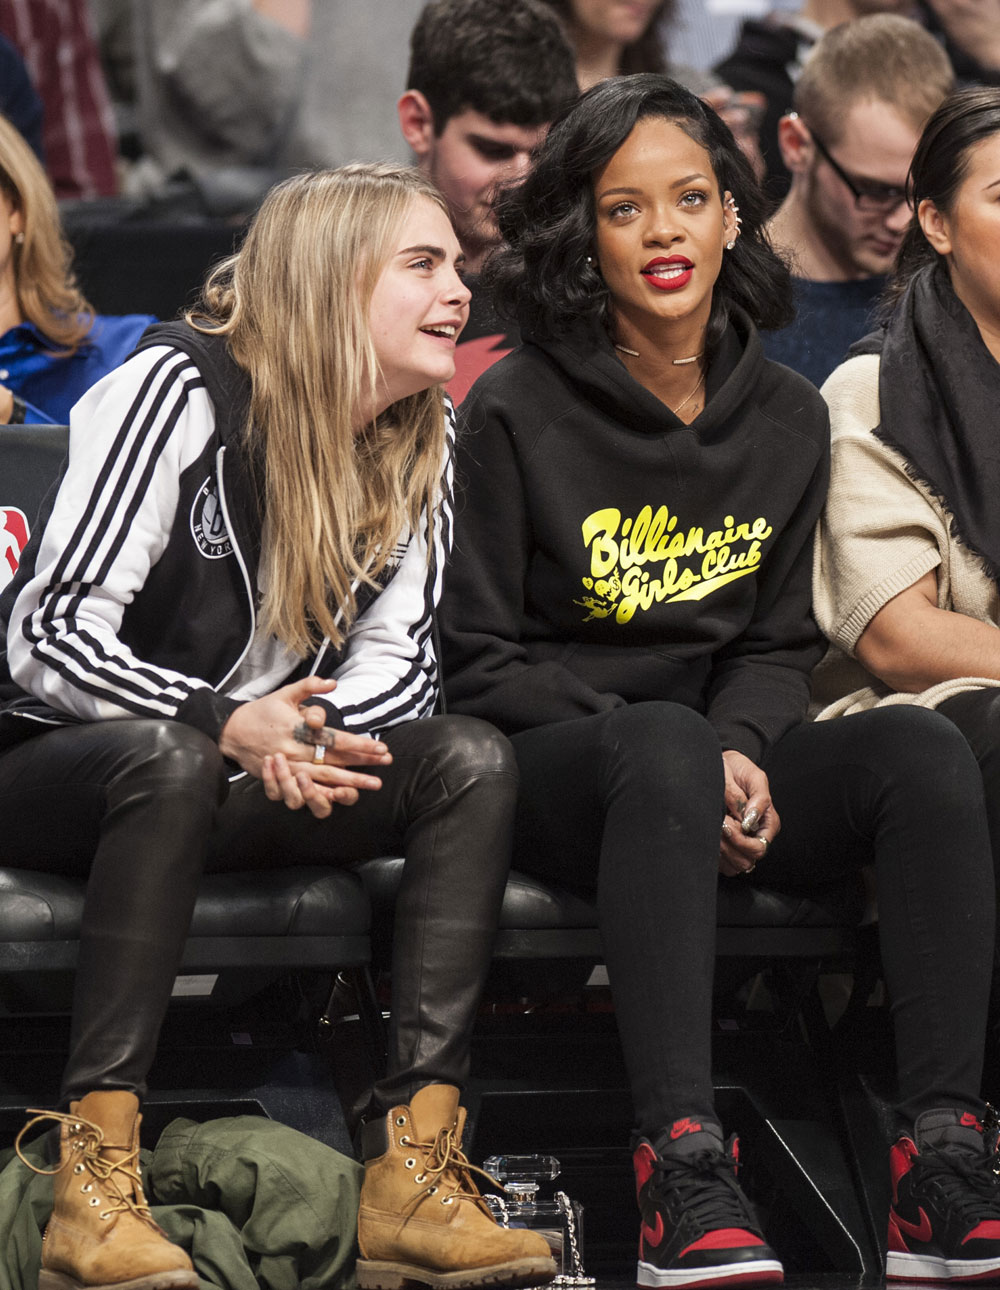 Rihanna Rocks Two $9,500 Chanel Purses To Nets Game With Cara Delevingne